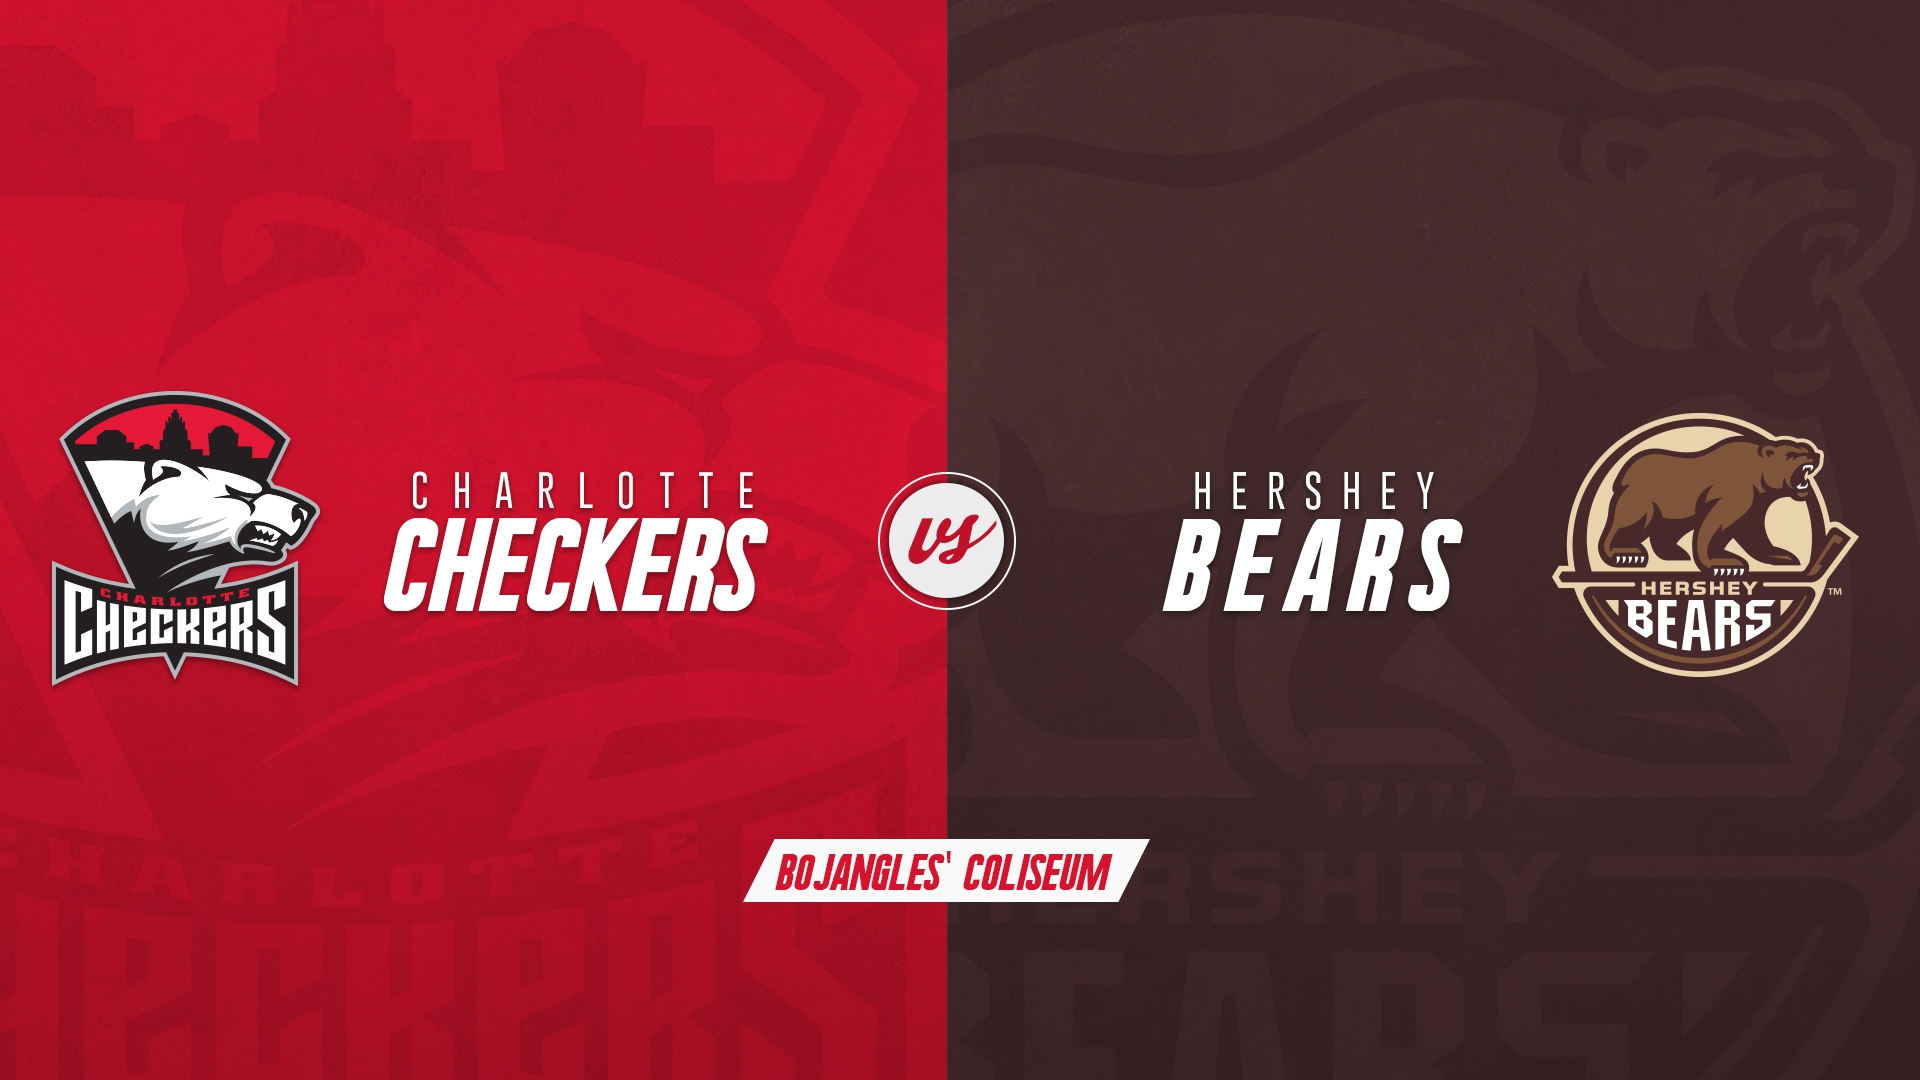 Charlotte Checkers vs. Hershey Bears